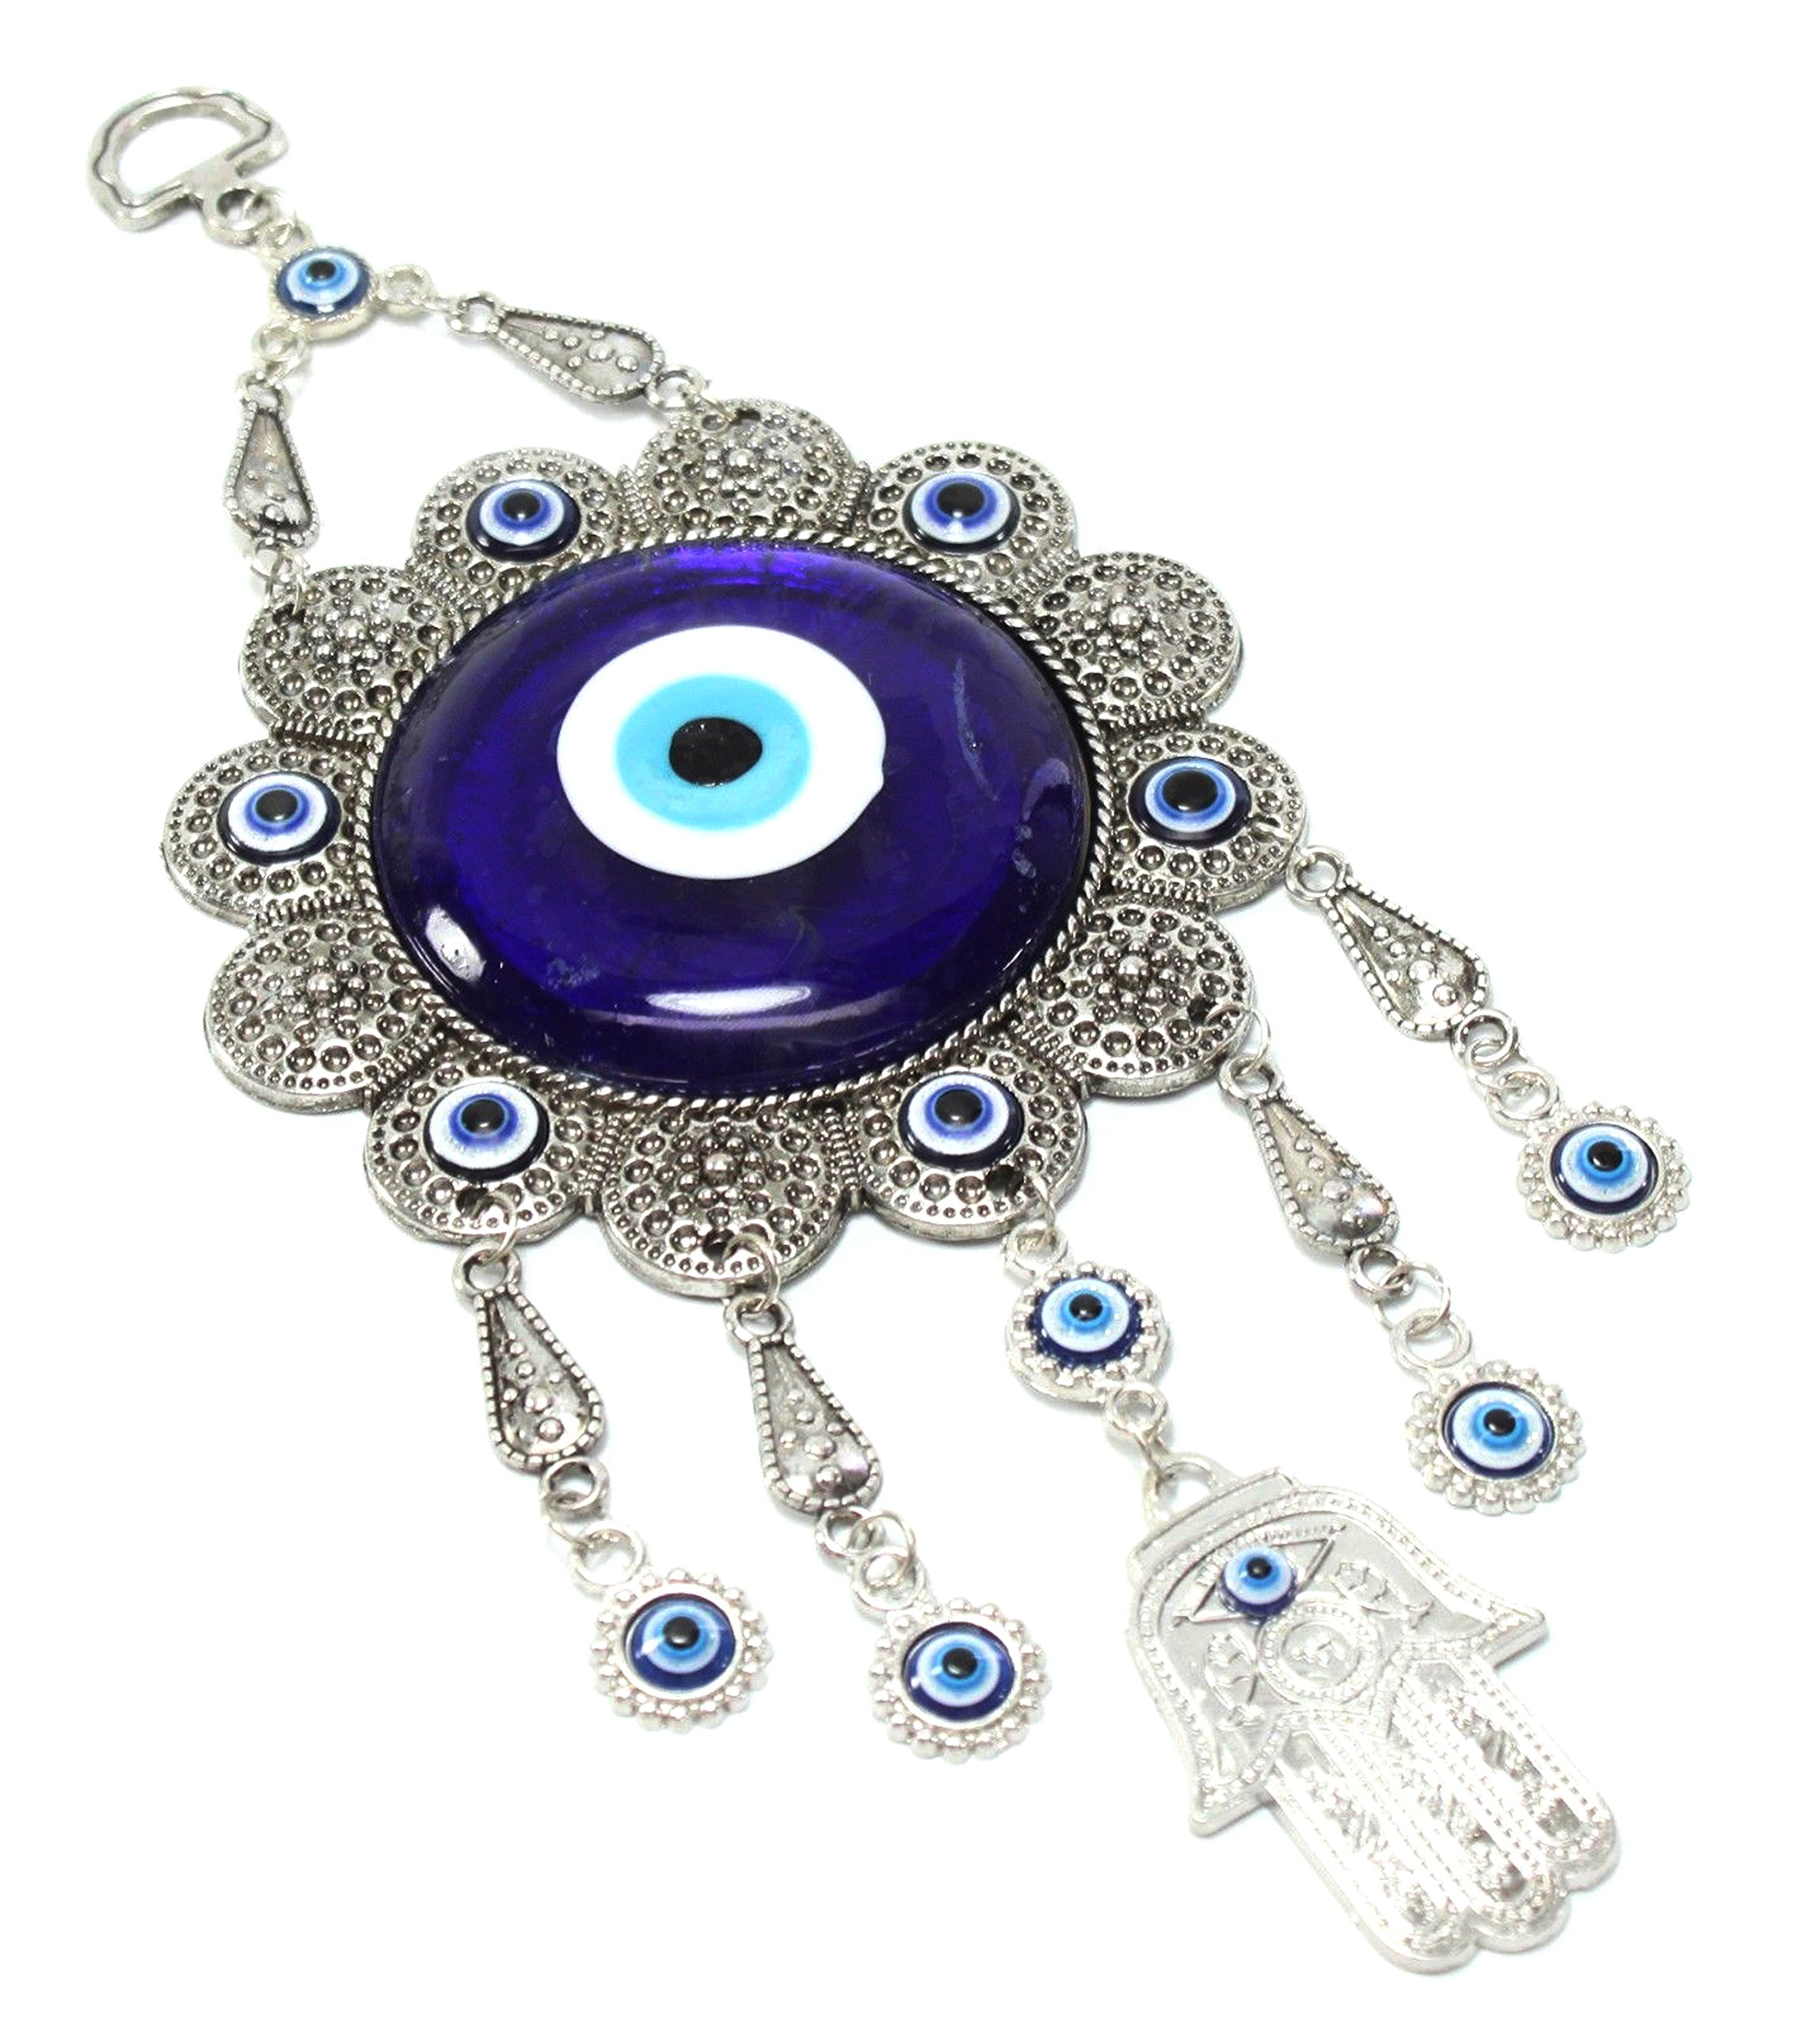 We pay your sales tax Turkish Blue Evil Eye (Nazar) Amulet Wall Hanging Home Decor Ornament Protection Good Luck Blessing Gift (Flower Hamsa)